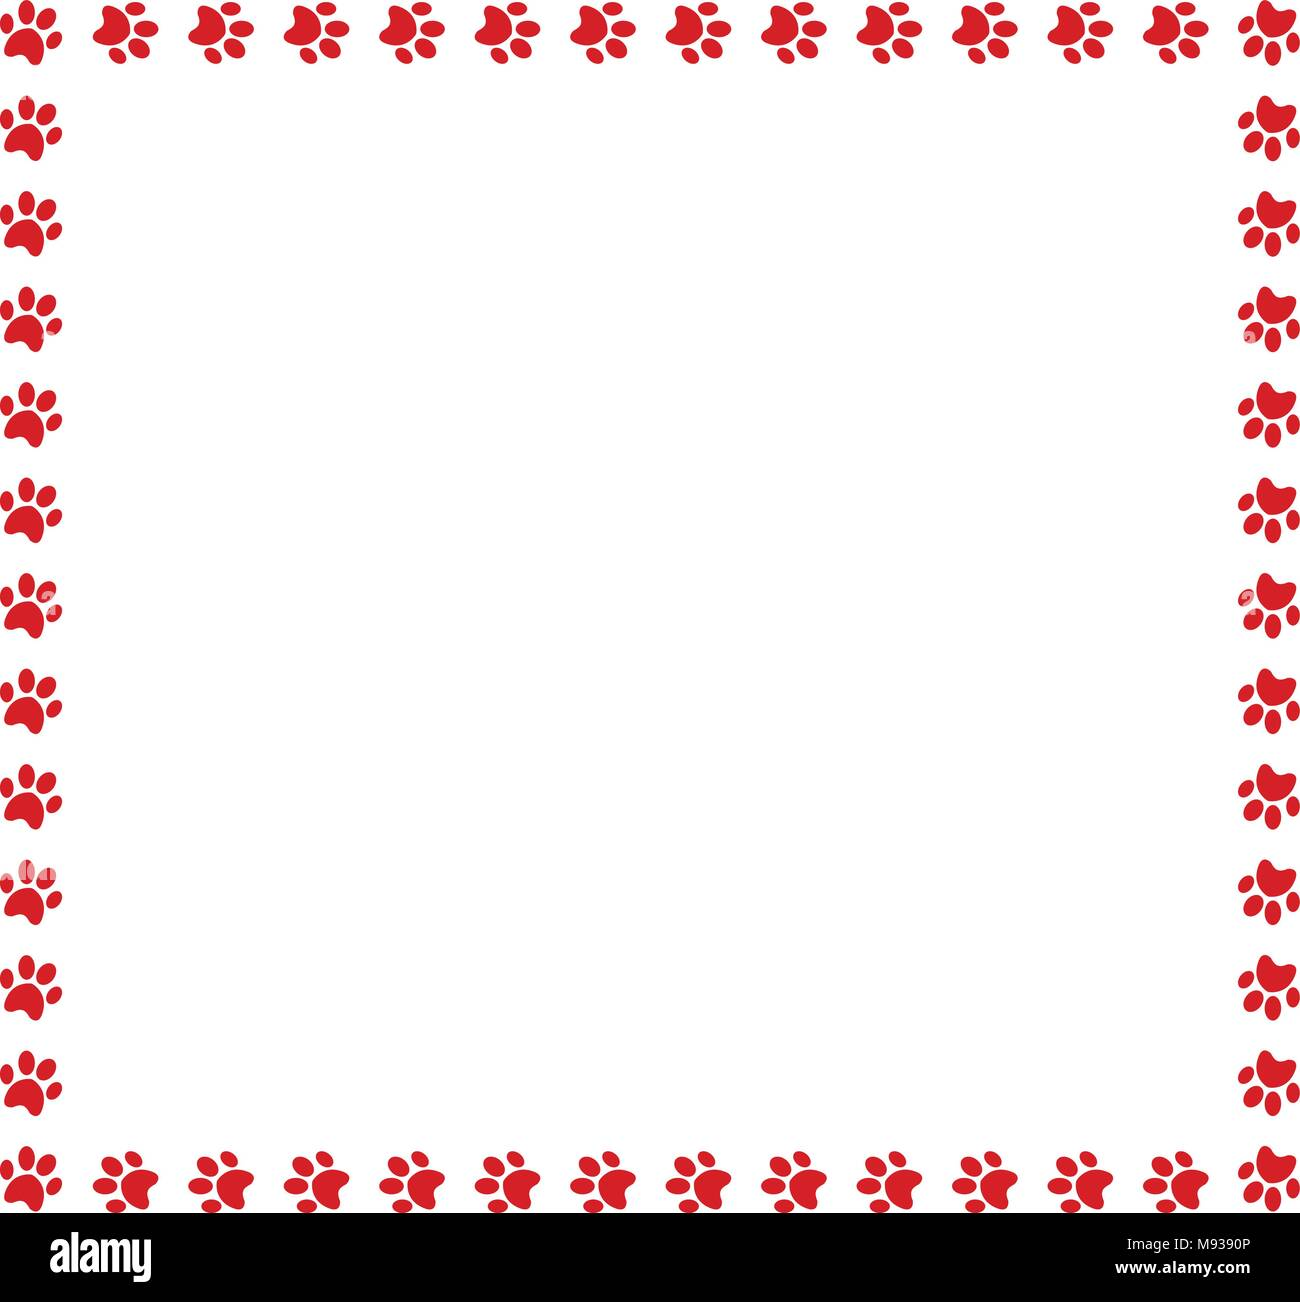 Square frame made of red animal paw prints on white background ...